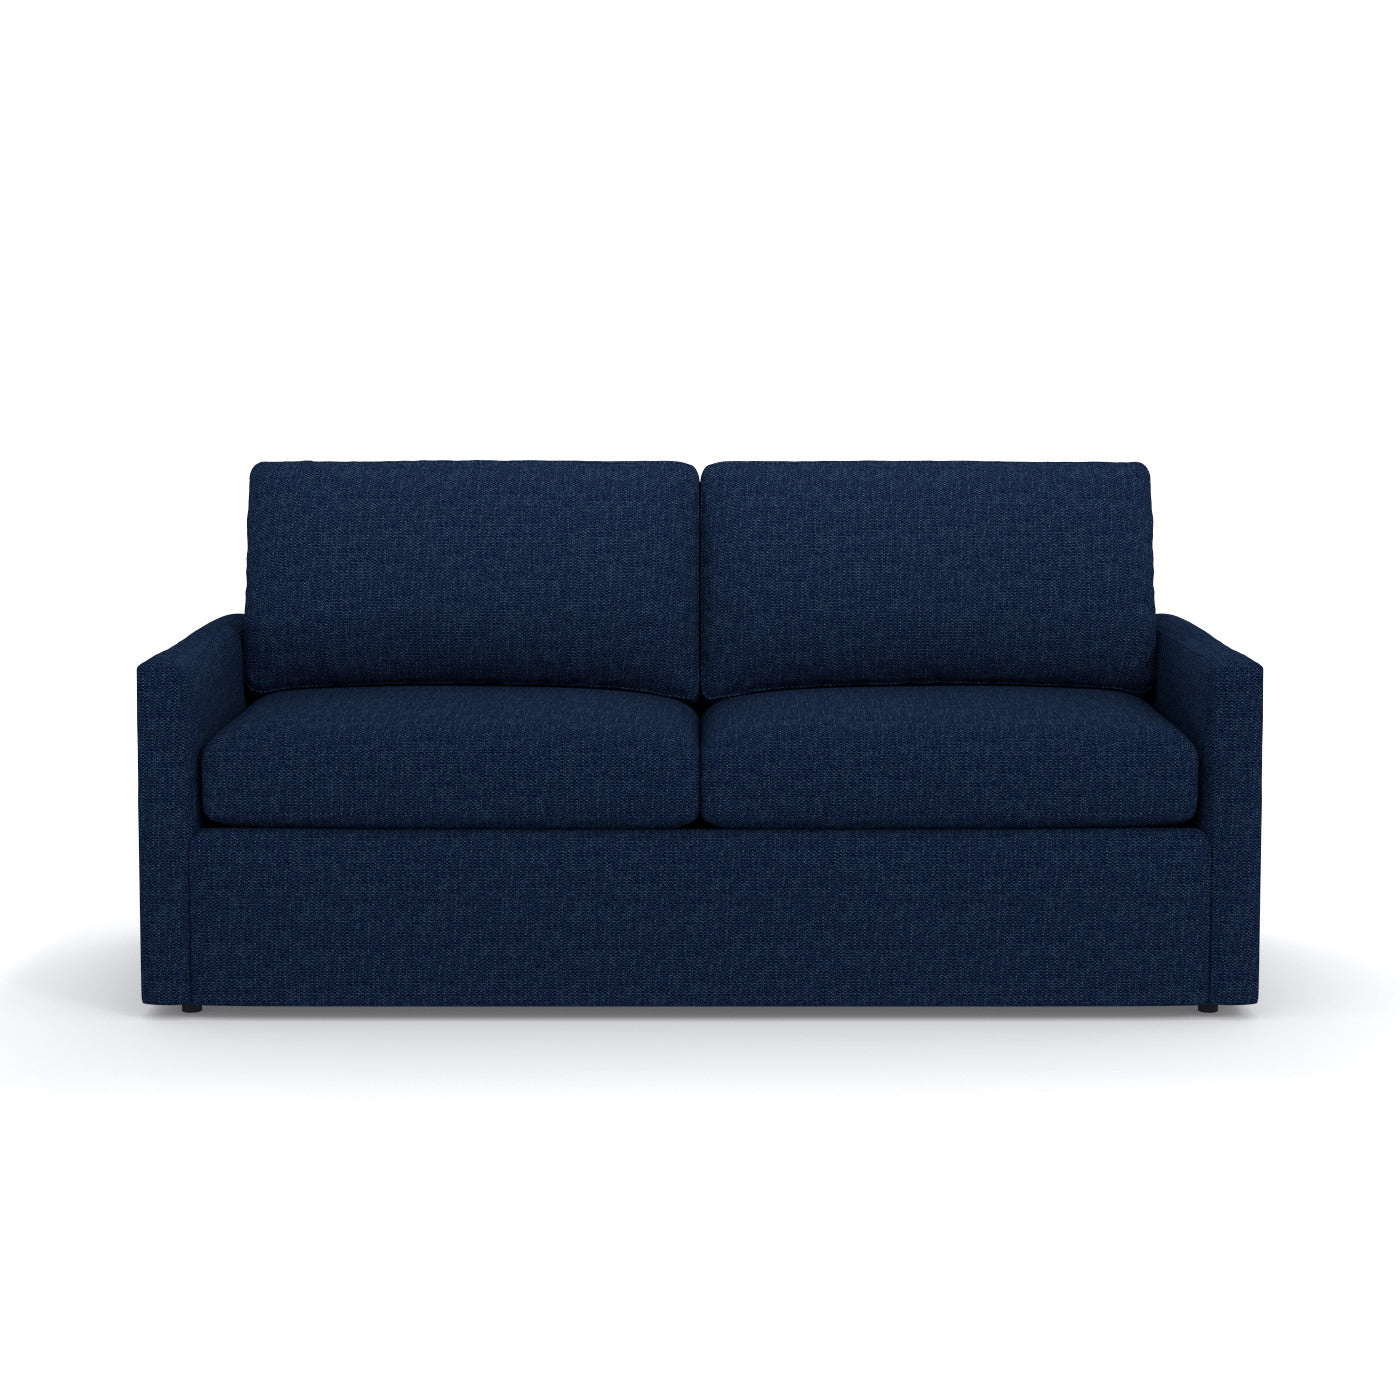 uk in size sofa and sofas small images along plus blue couch soothing prissy decoration navyblue gallery furniture rc cushions with velvet of for navy large sleeper